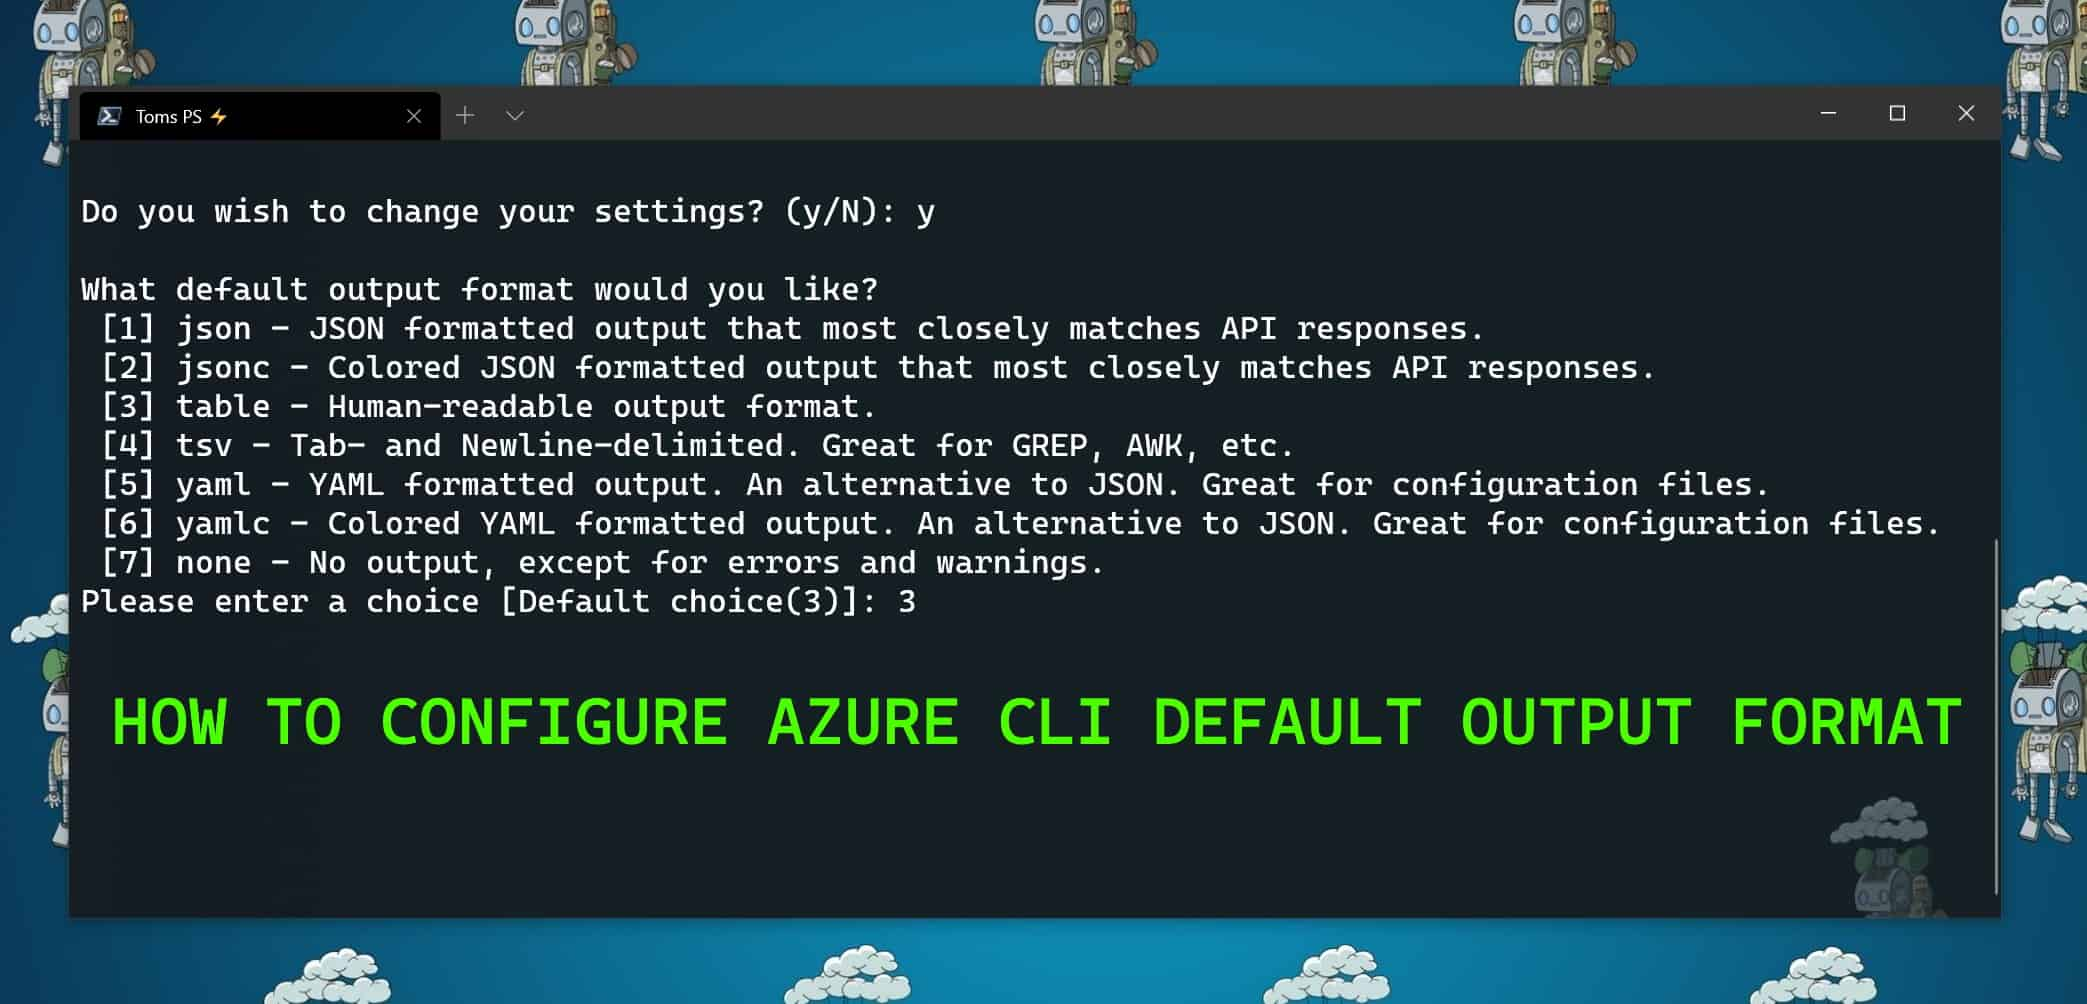 How to Configure Azure CLI Default Output